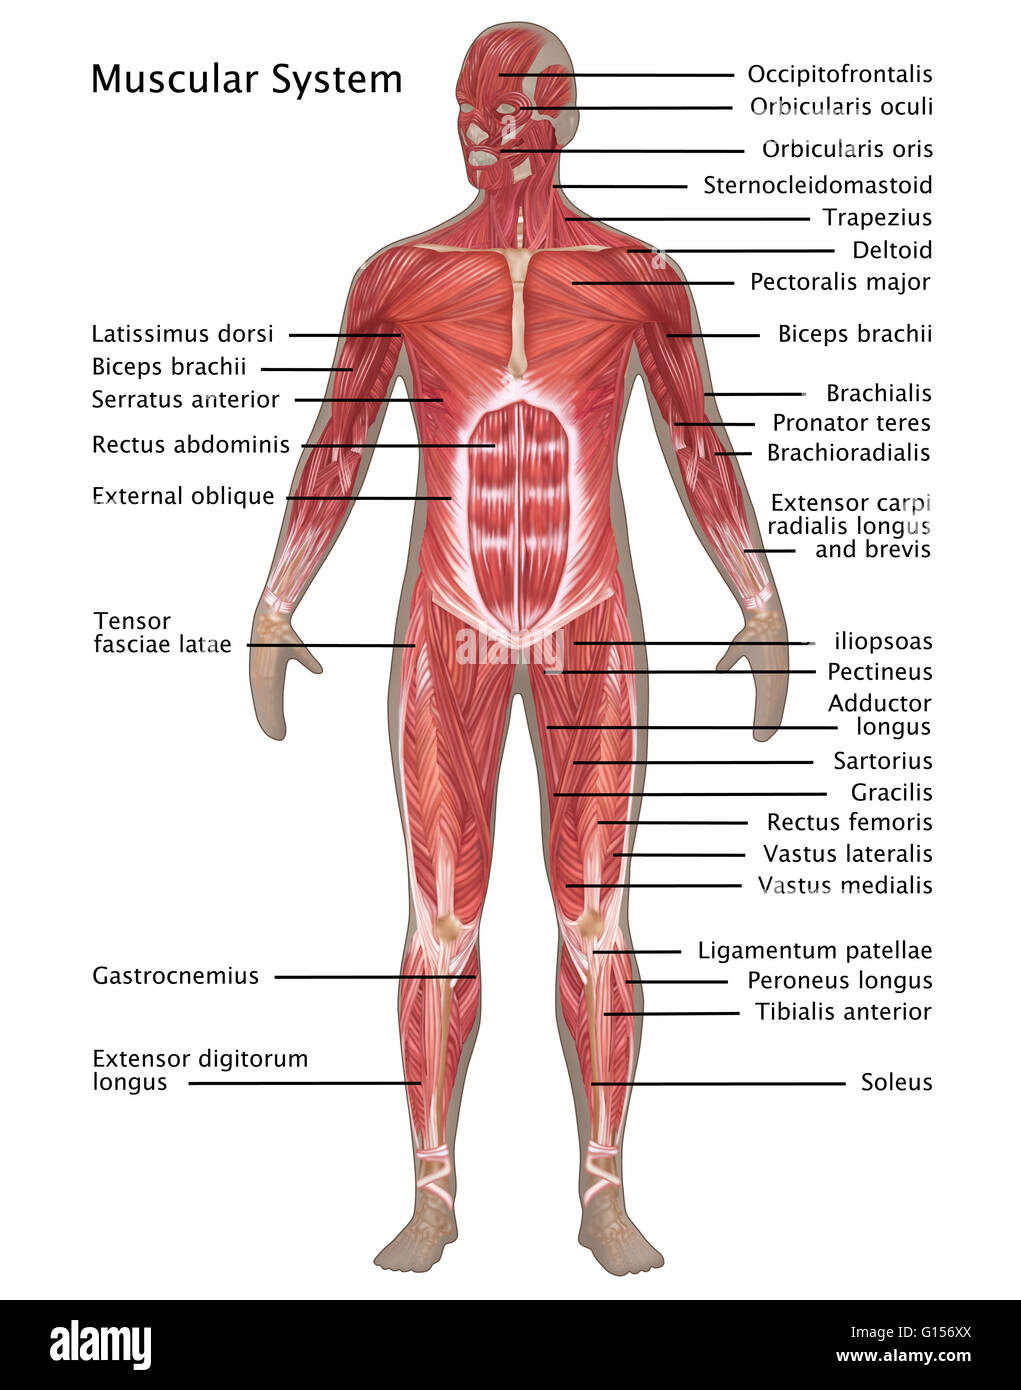 Illustration of the muscular system in the male anatomy. Labeled ...